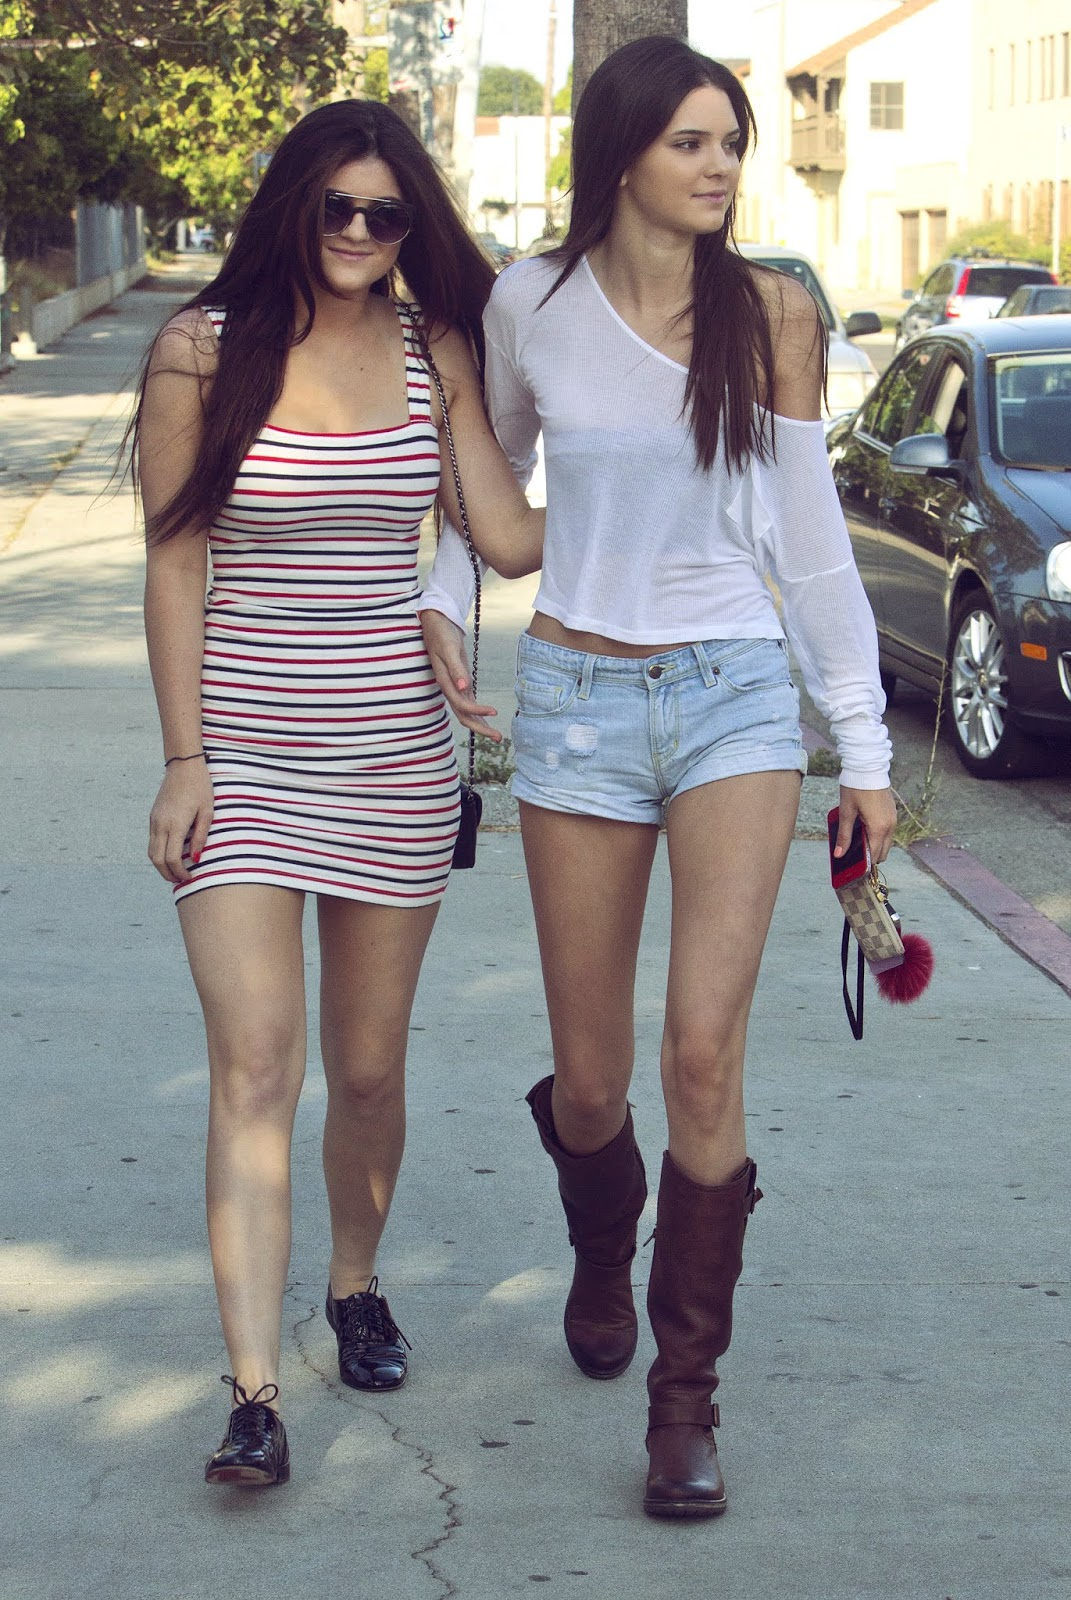 04 - Out and About with Kylie Jenner in Hollywood California on June 16, 2012